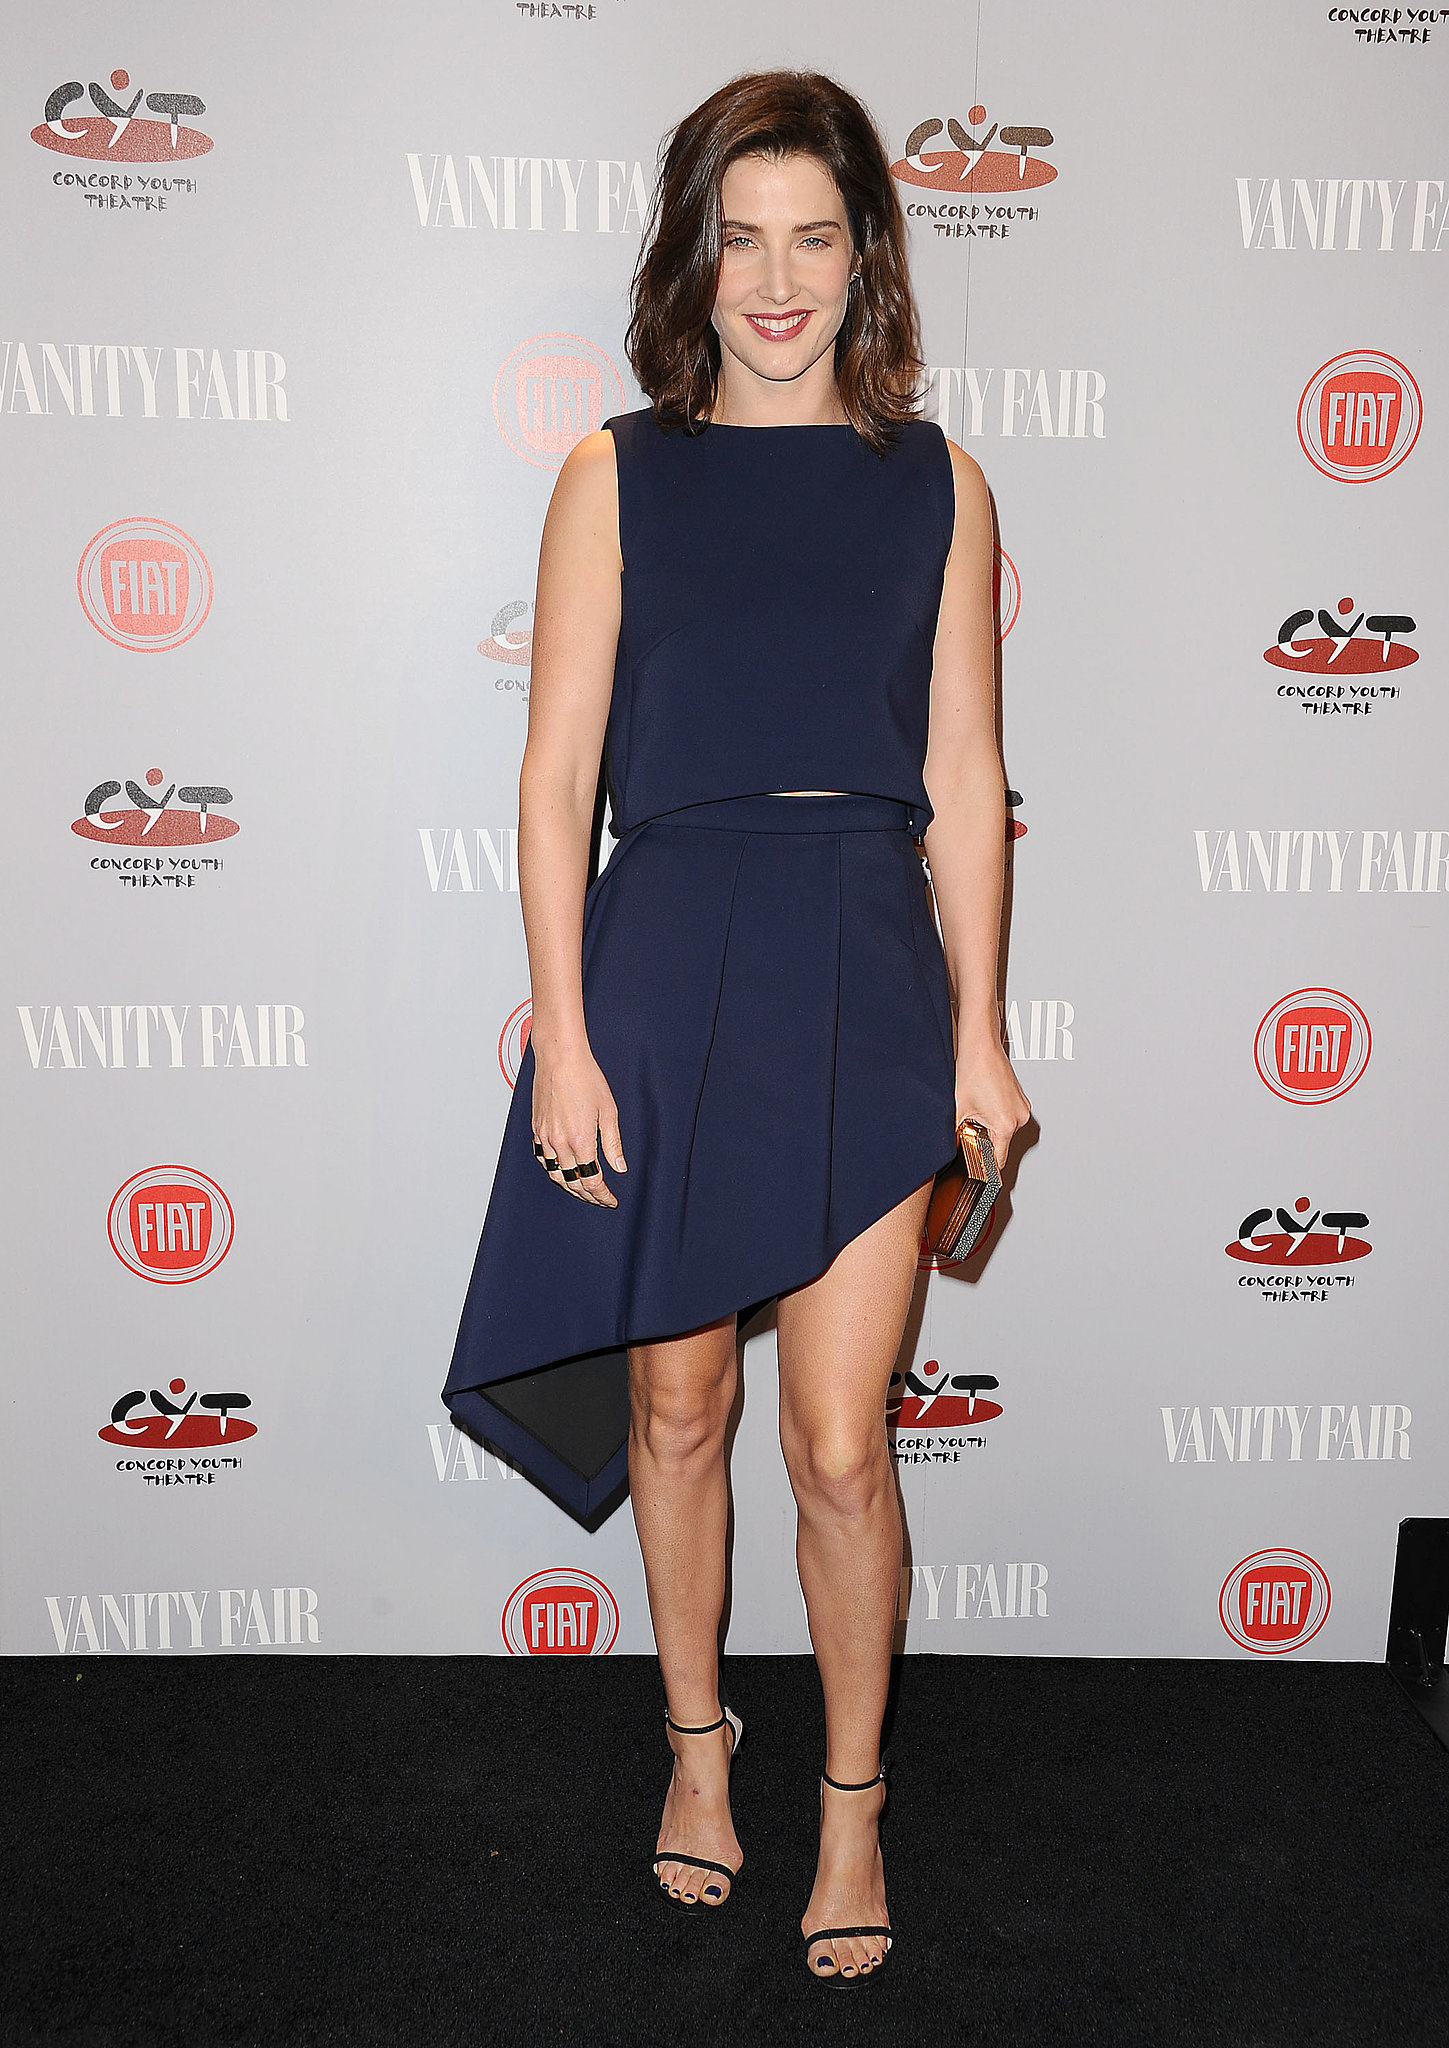 Cobie Smulders at the Vanity Fair Young Hollywood Party